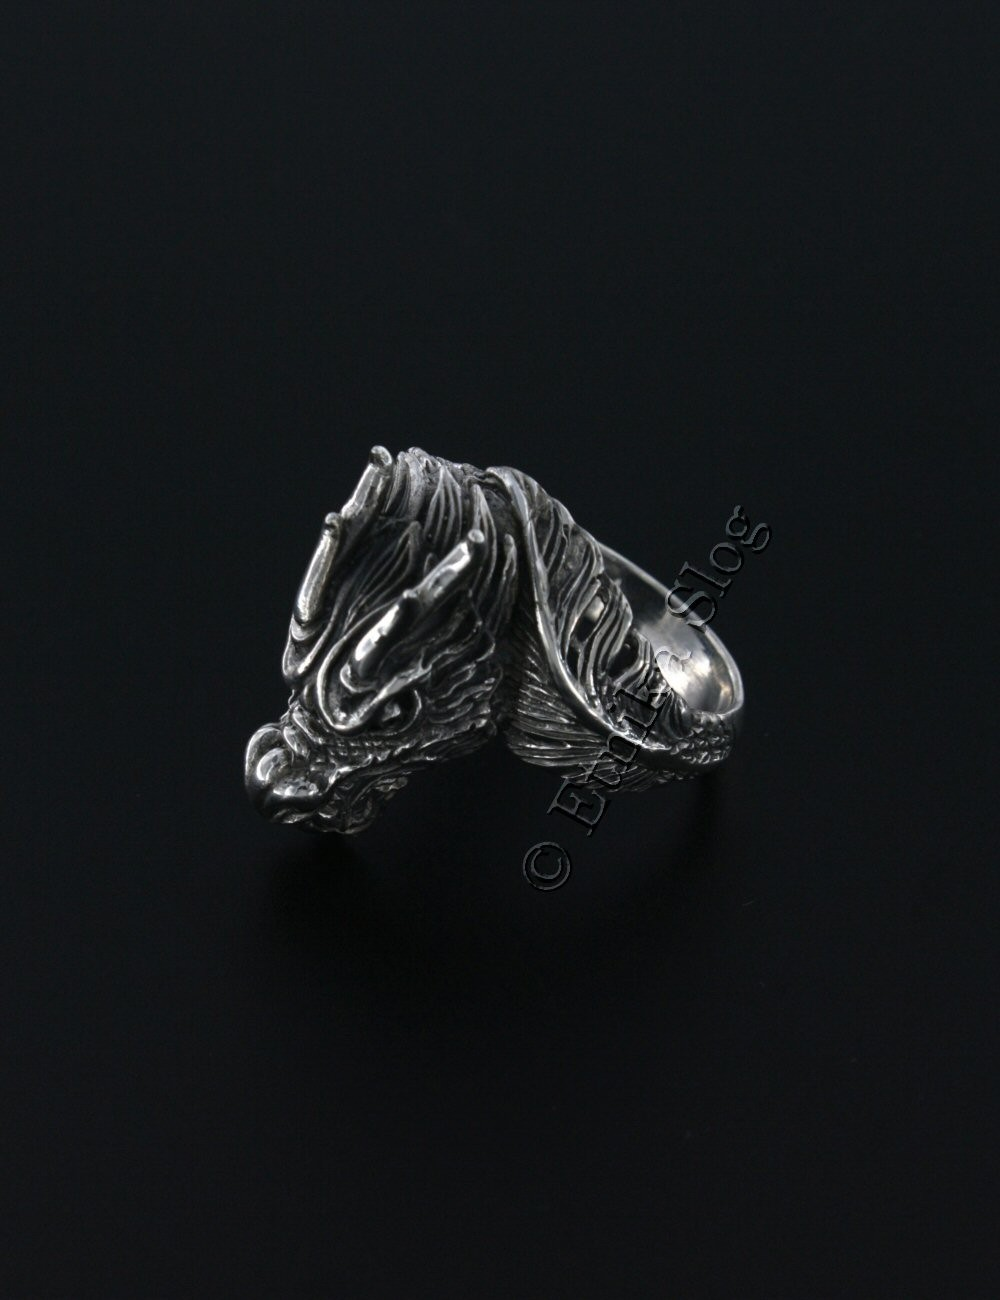 WROUGHT SILVER RINGS ARG-AN2450-01 - Oriente Import S.r.l.